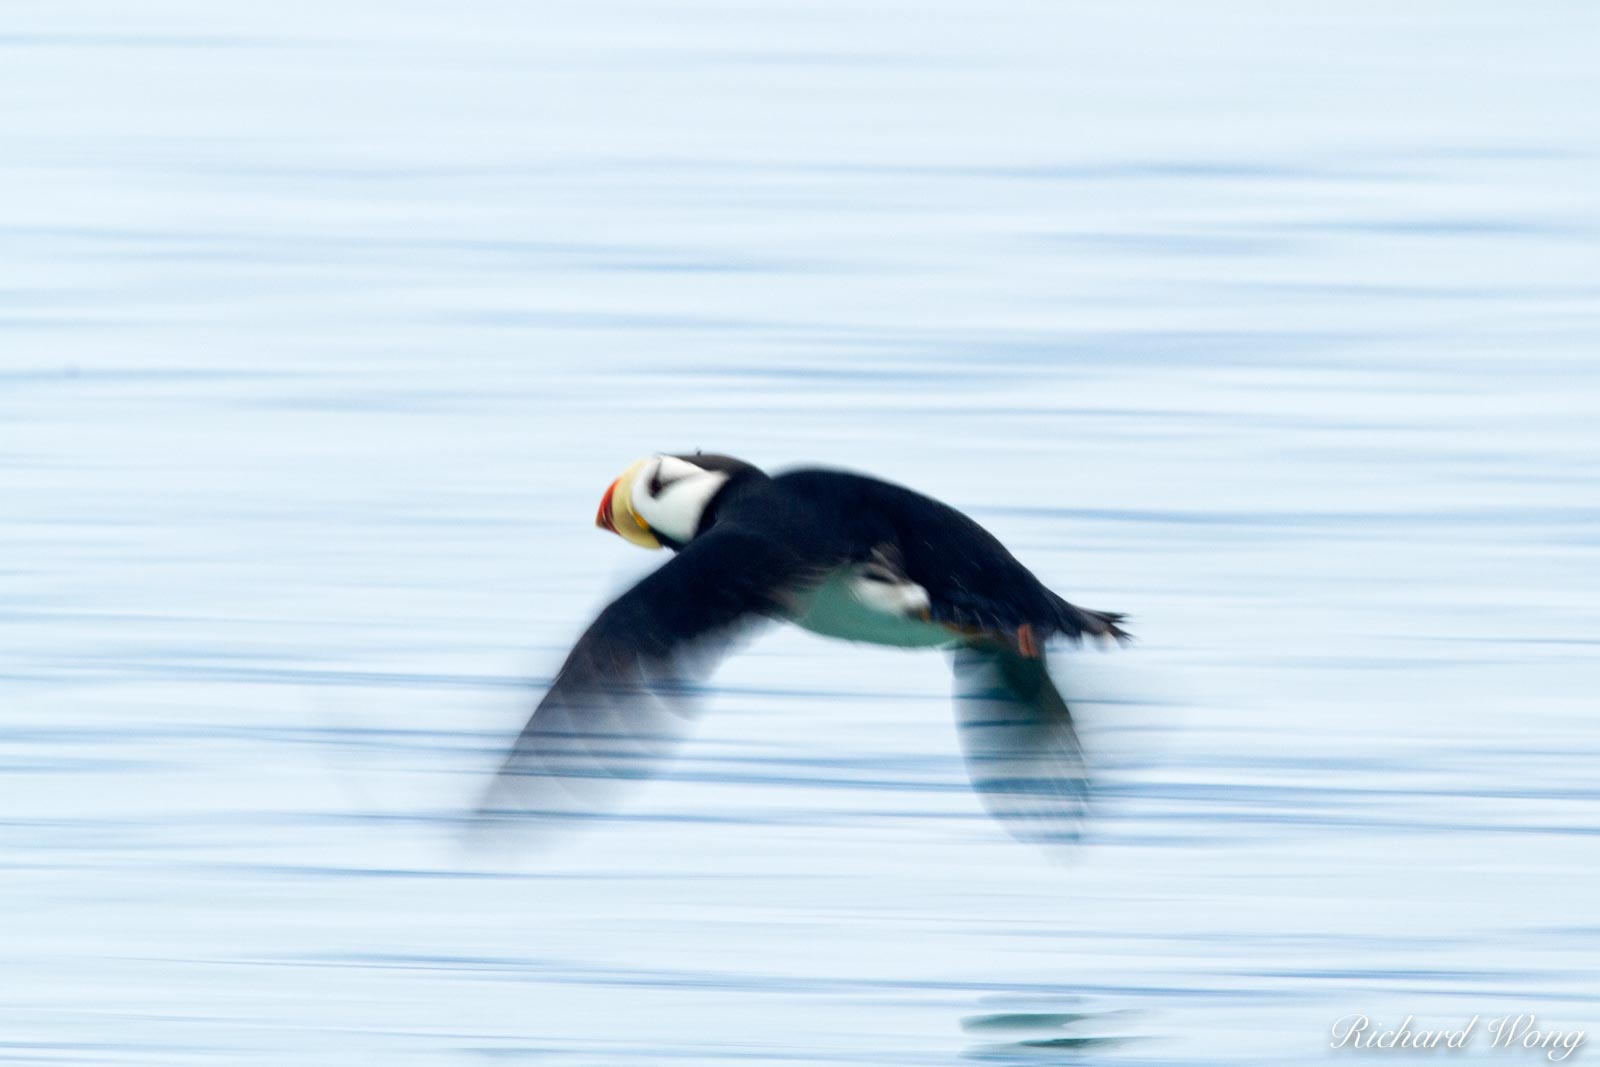 Horned Puffin Skimming Above Water, Alaska Maritime National Wildlife Refuge near Lake Clark National Park, Alaska, photo